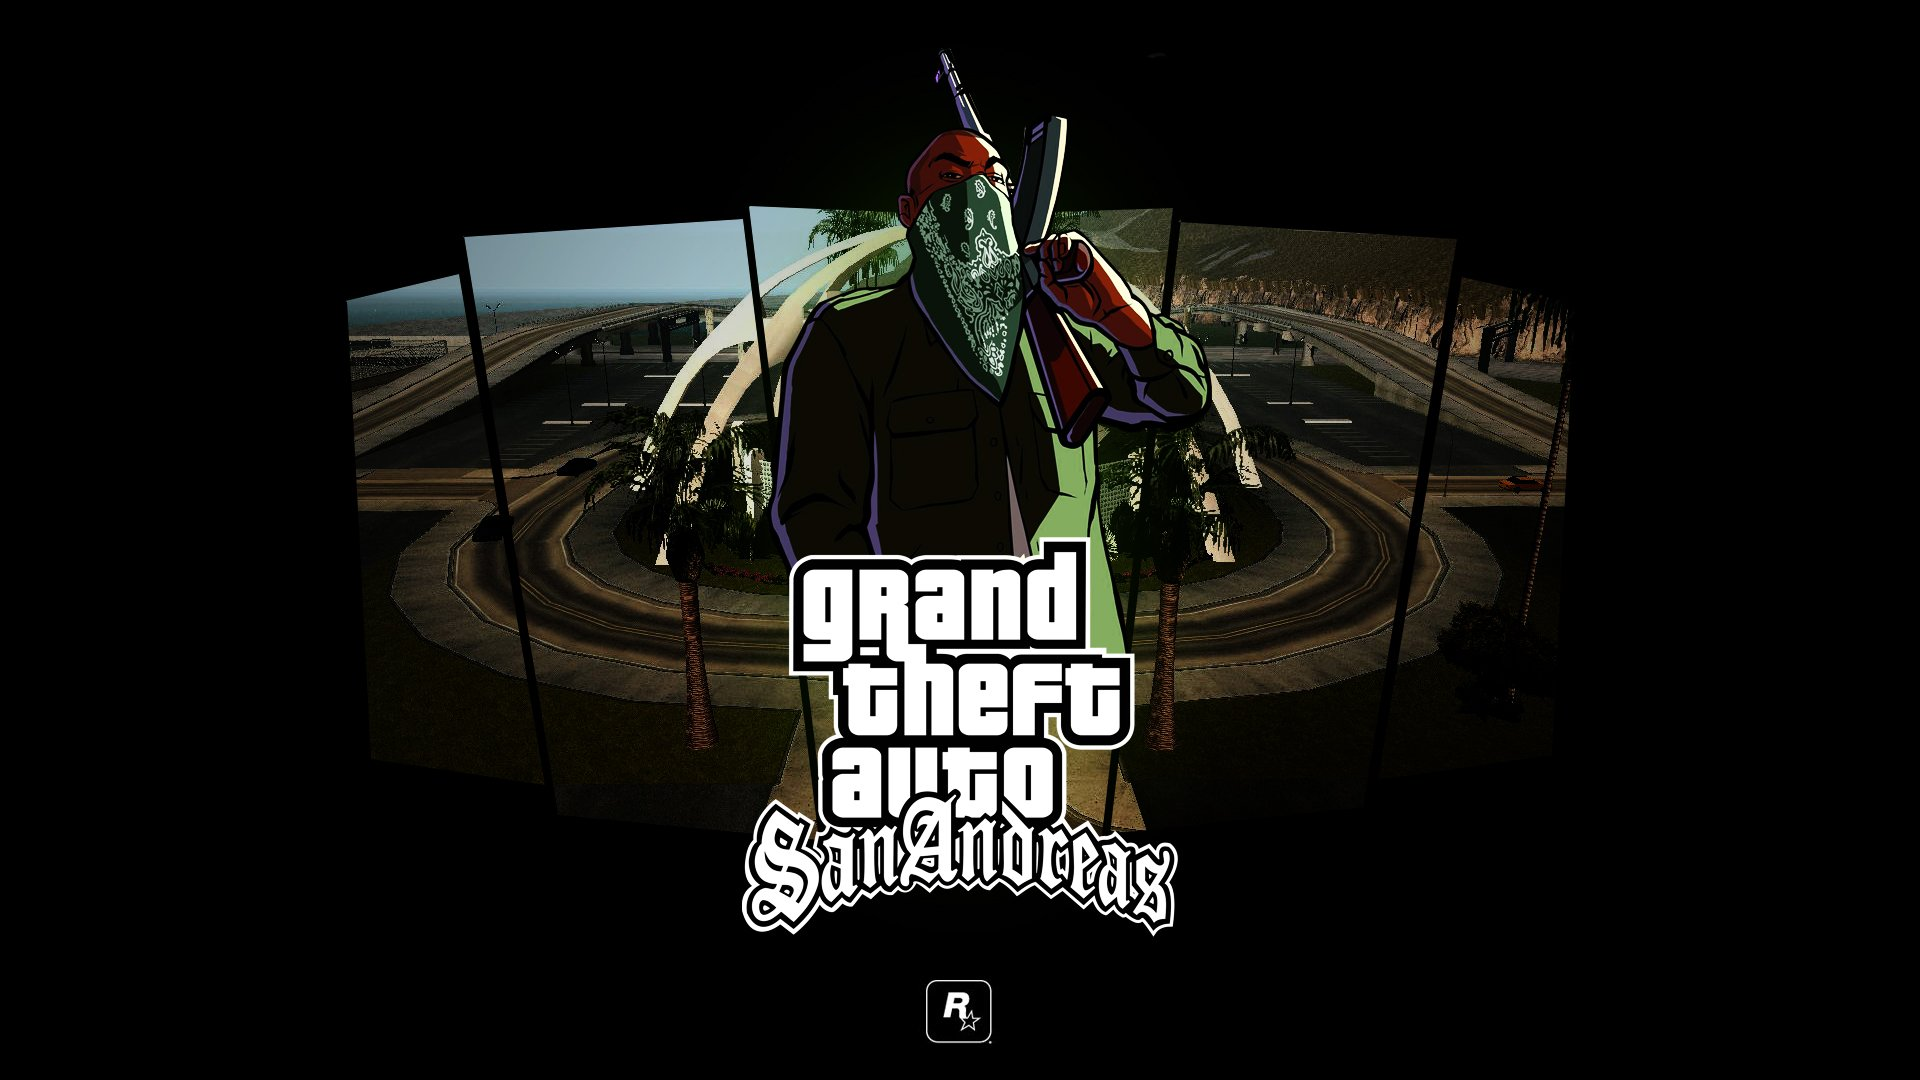 Grand Theft Auto San Andreas Wallpapers 1920x1080